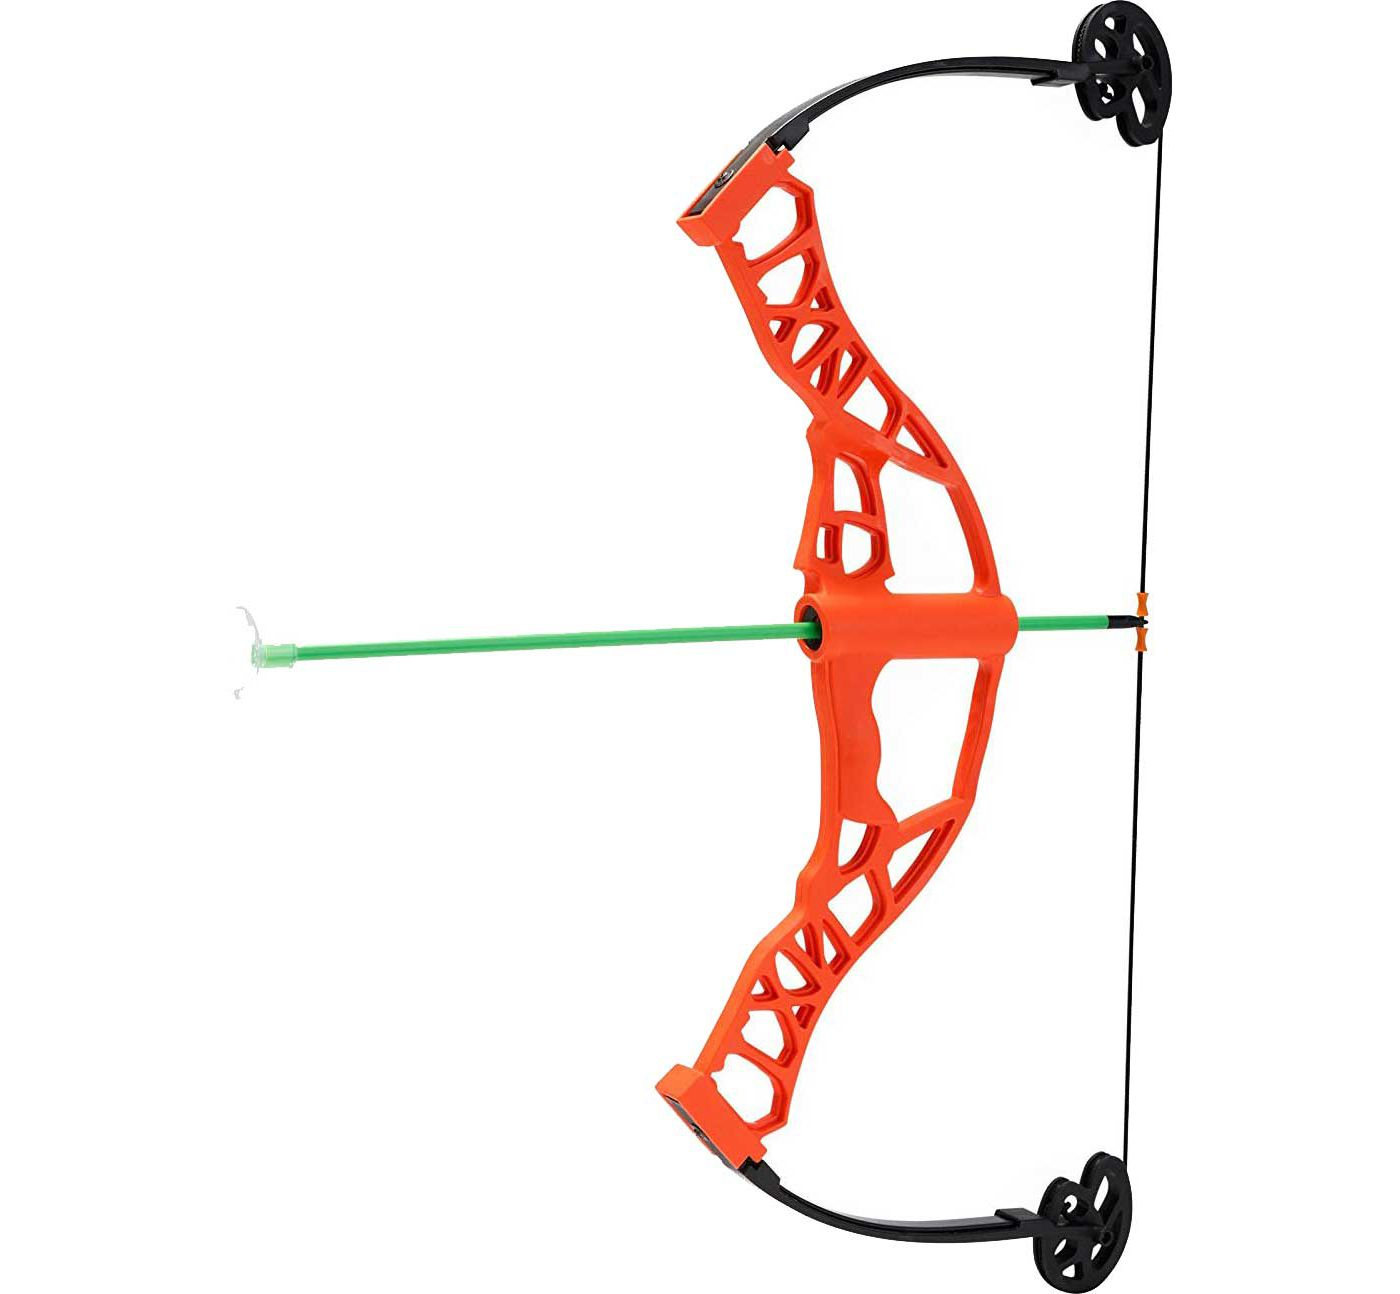 NXT Generation Nitro Blazer Compound Bow